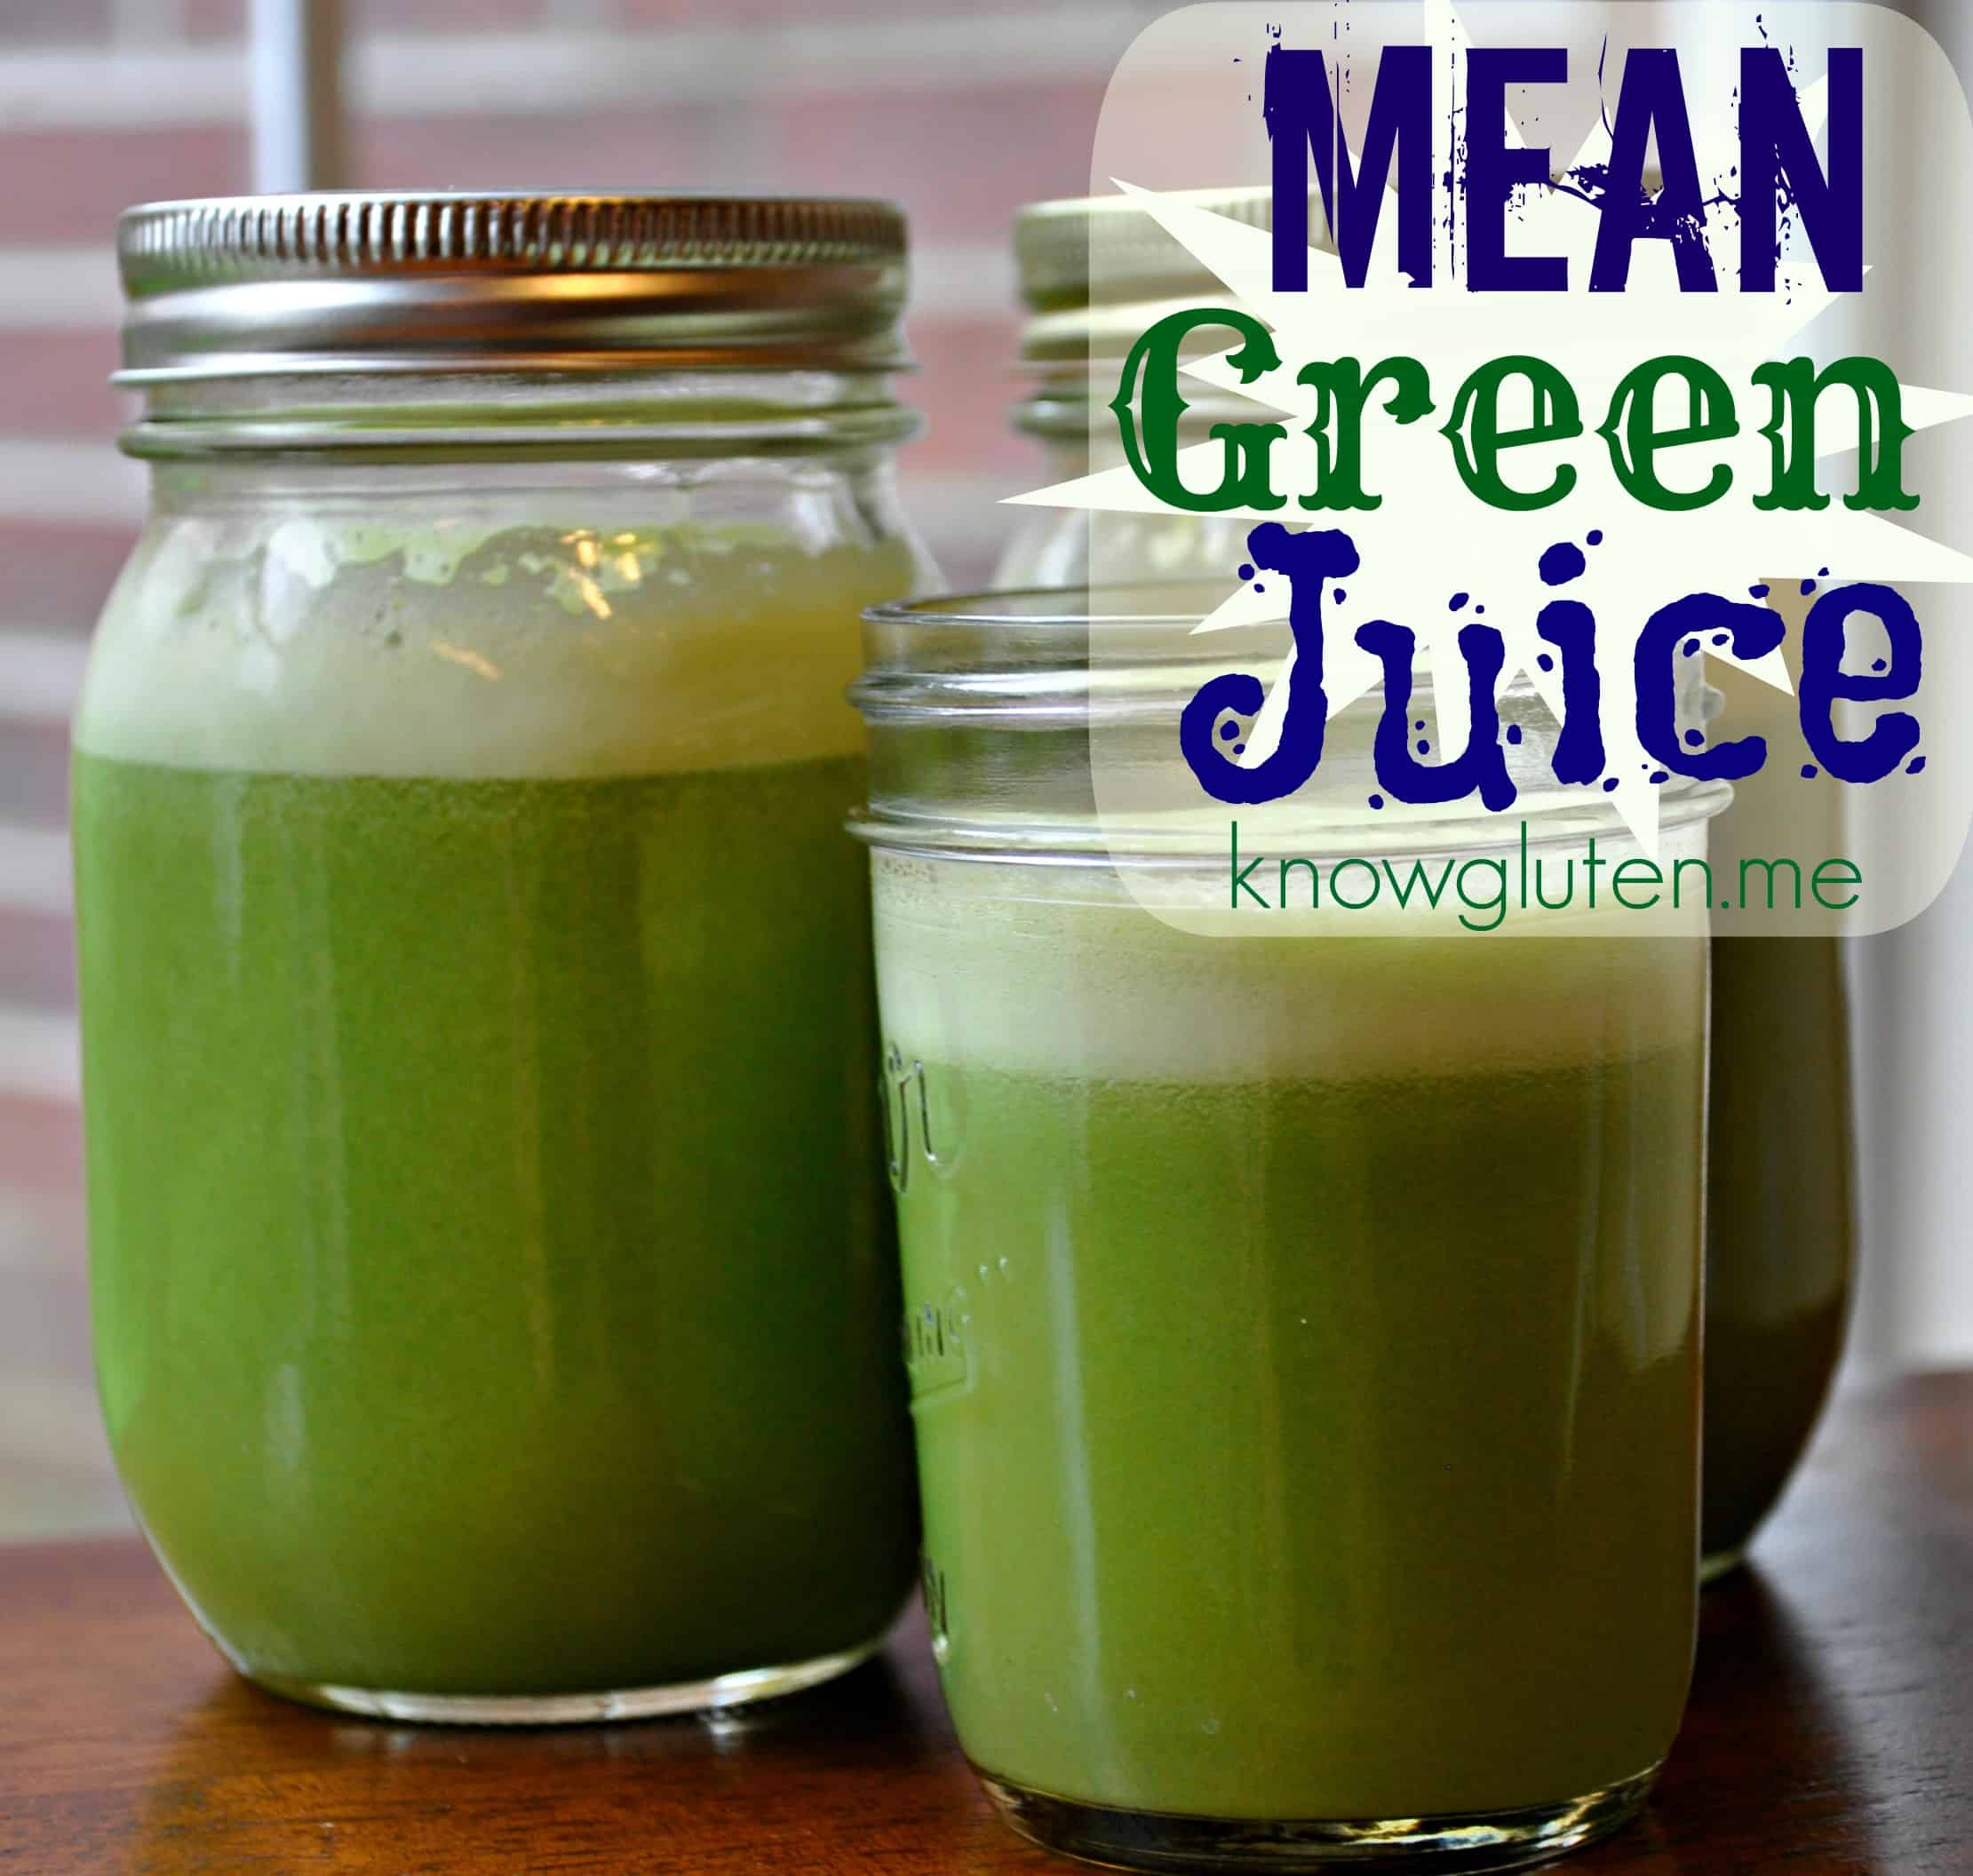 Mean Green Juice from knowgluten.me